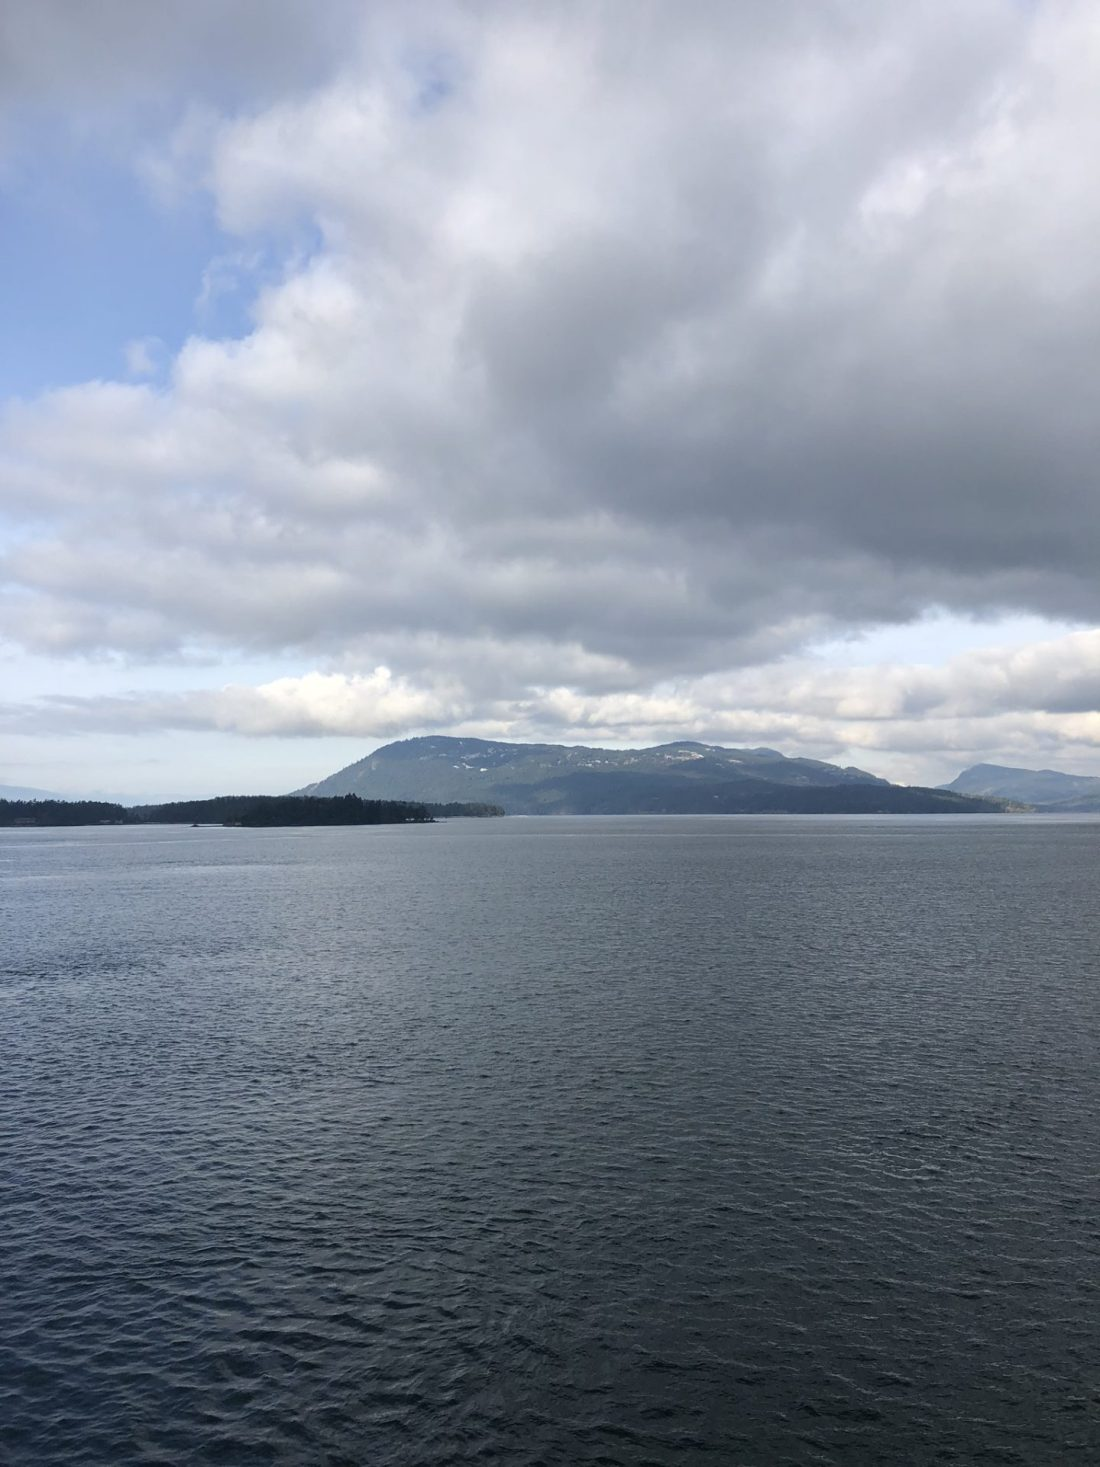 Views on the ferry from Vancouver to Victoria